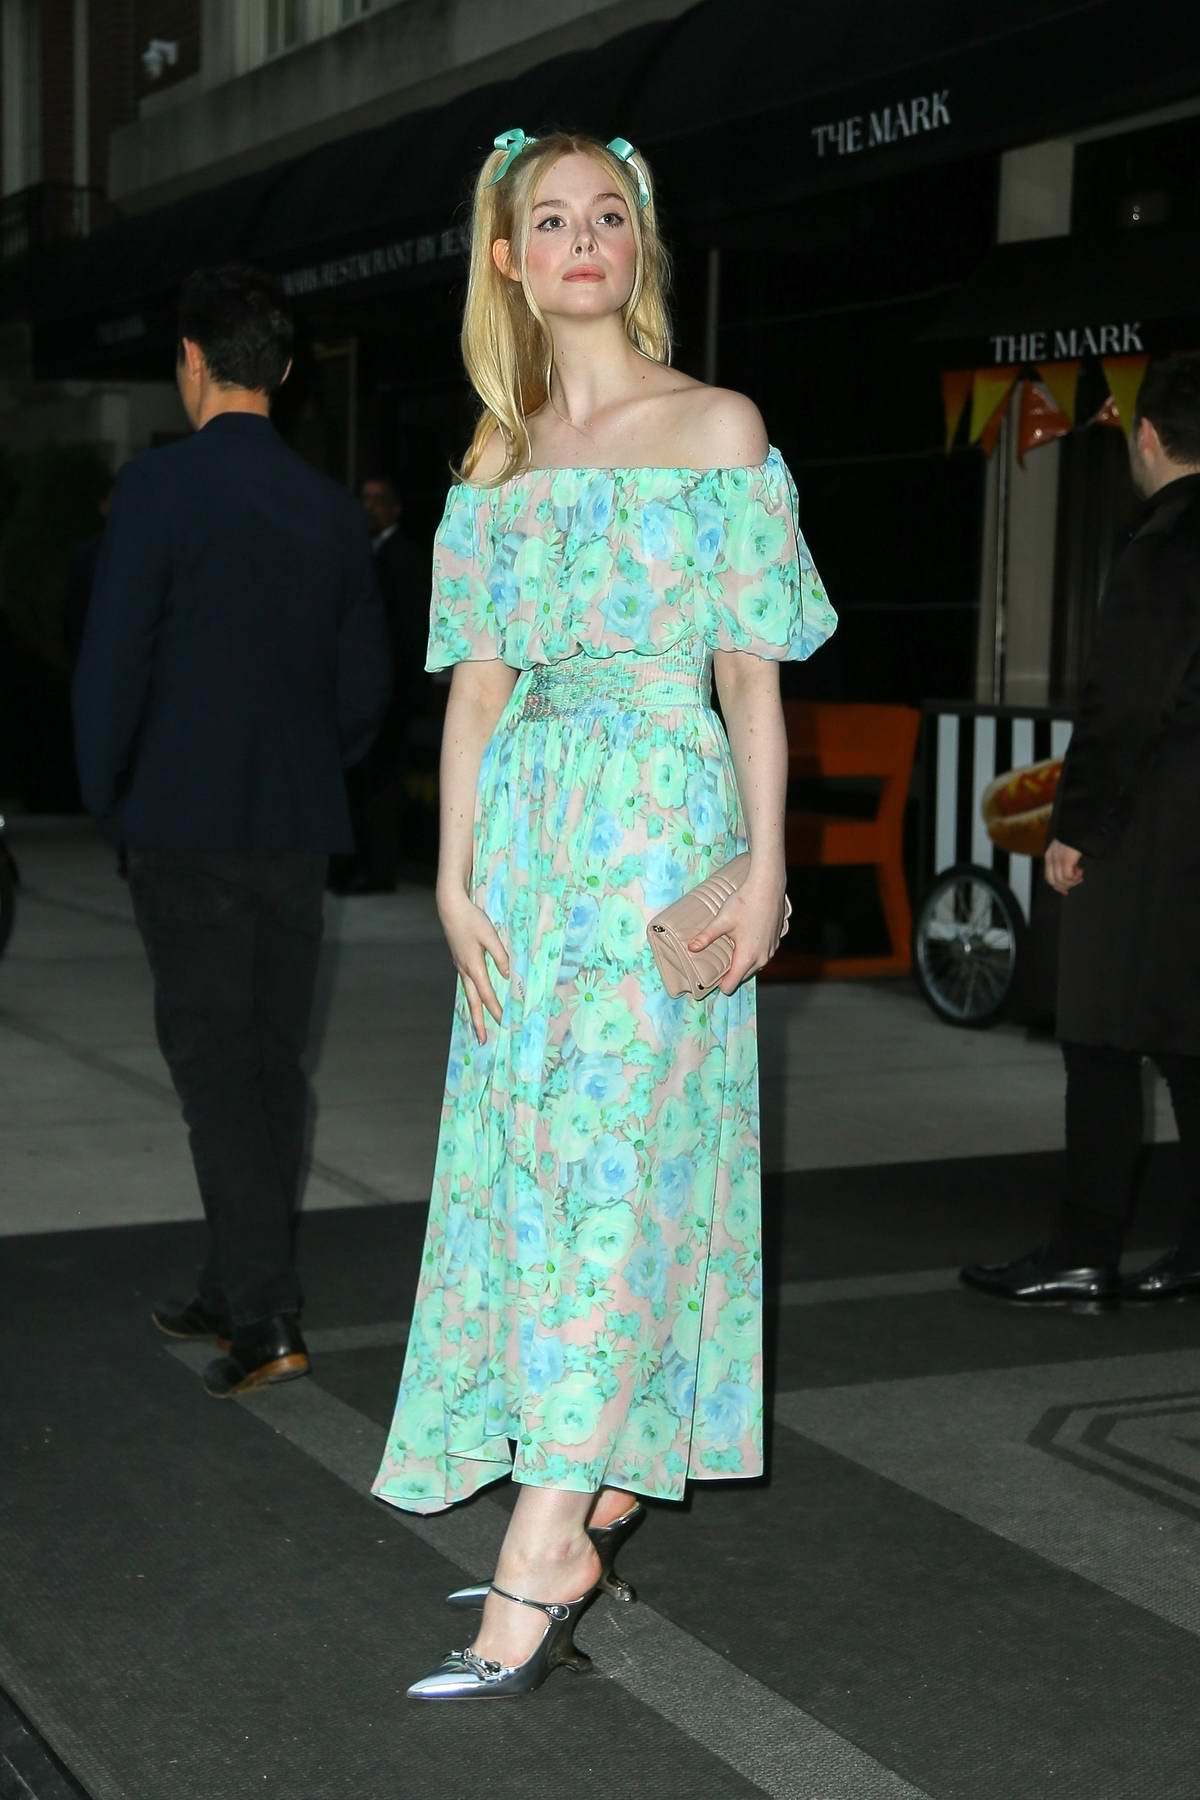 Elle Fanning looks adorable in a floral dress as she heads to the Prada event with Max Minghella in New York City